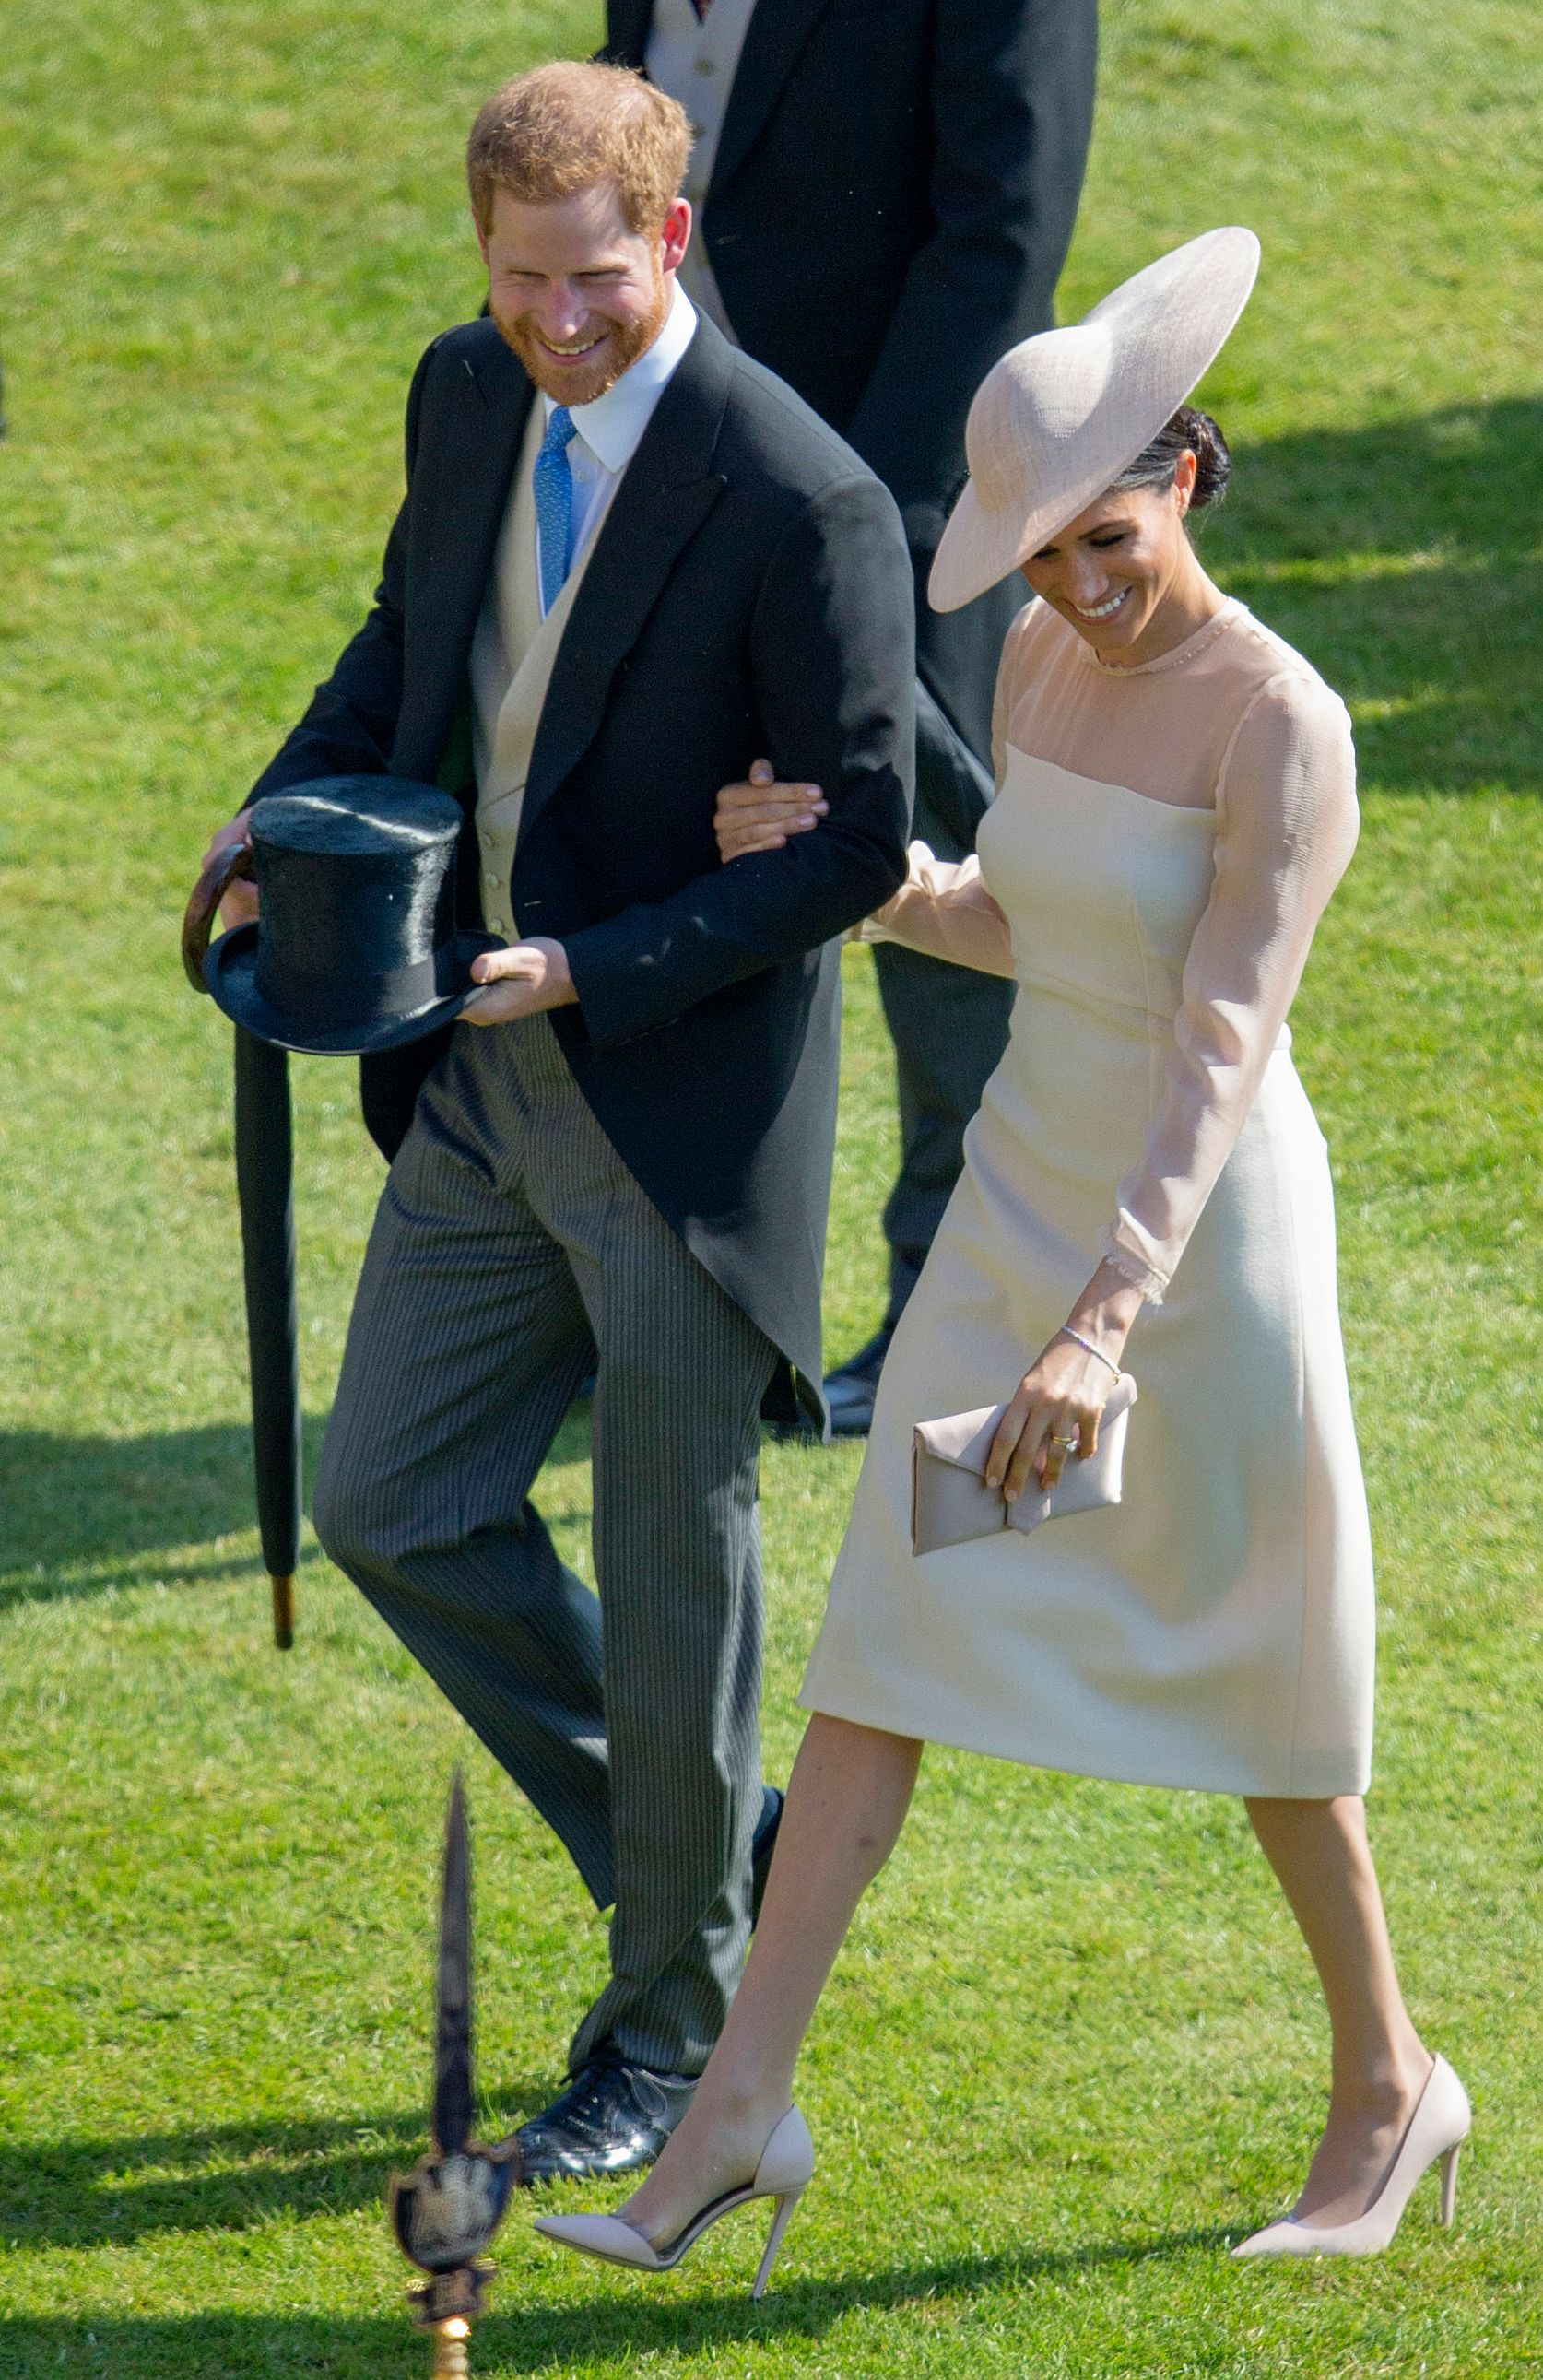 <div class='meta'><div class='origin-logo' data-origin='none'></div><span class='caption-text' data-credit='IAN VOGLER/AFP/Getty Images'>Prince Harry, Duke of Sussex and his new wife Britain's Meghan, Duchess of Sussex, attend the Prince of Wales's 70th Birthday Garden Party at Buckingham Palace in London on May 22.</span></div>